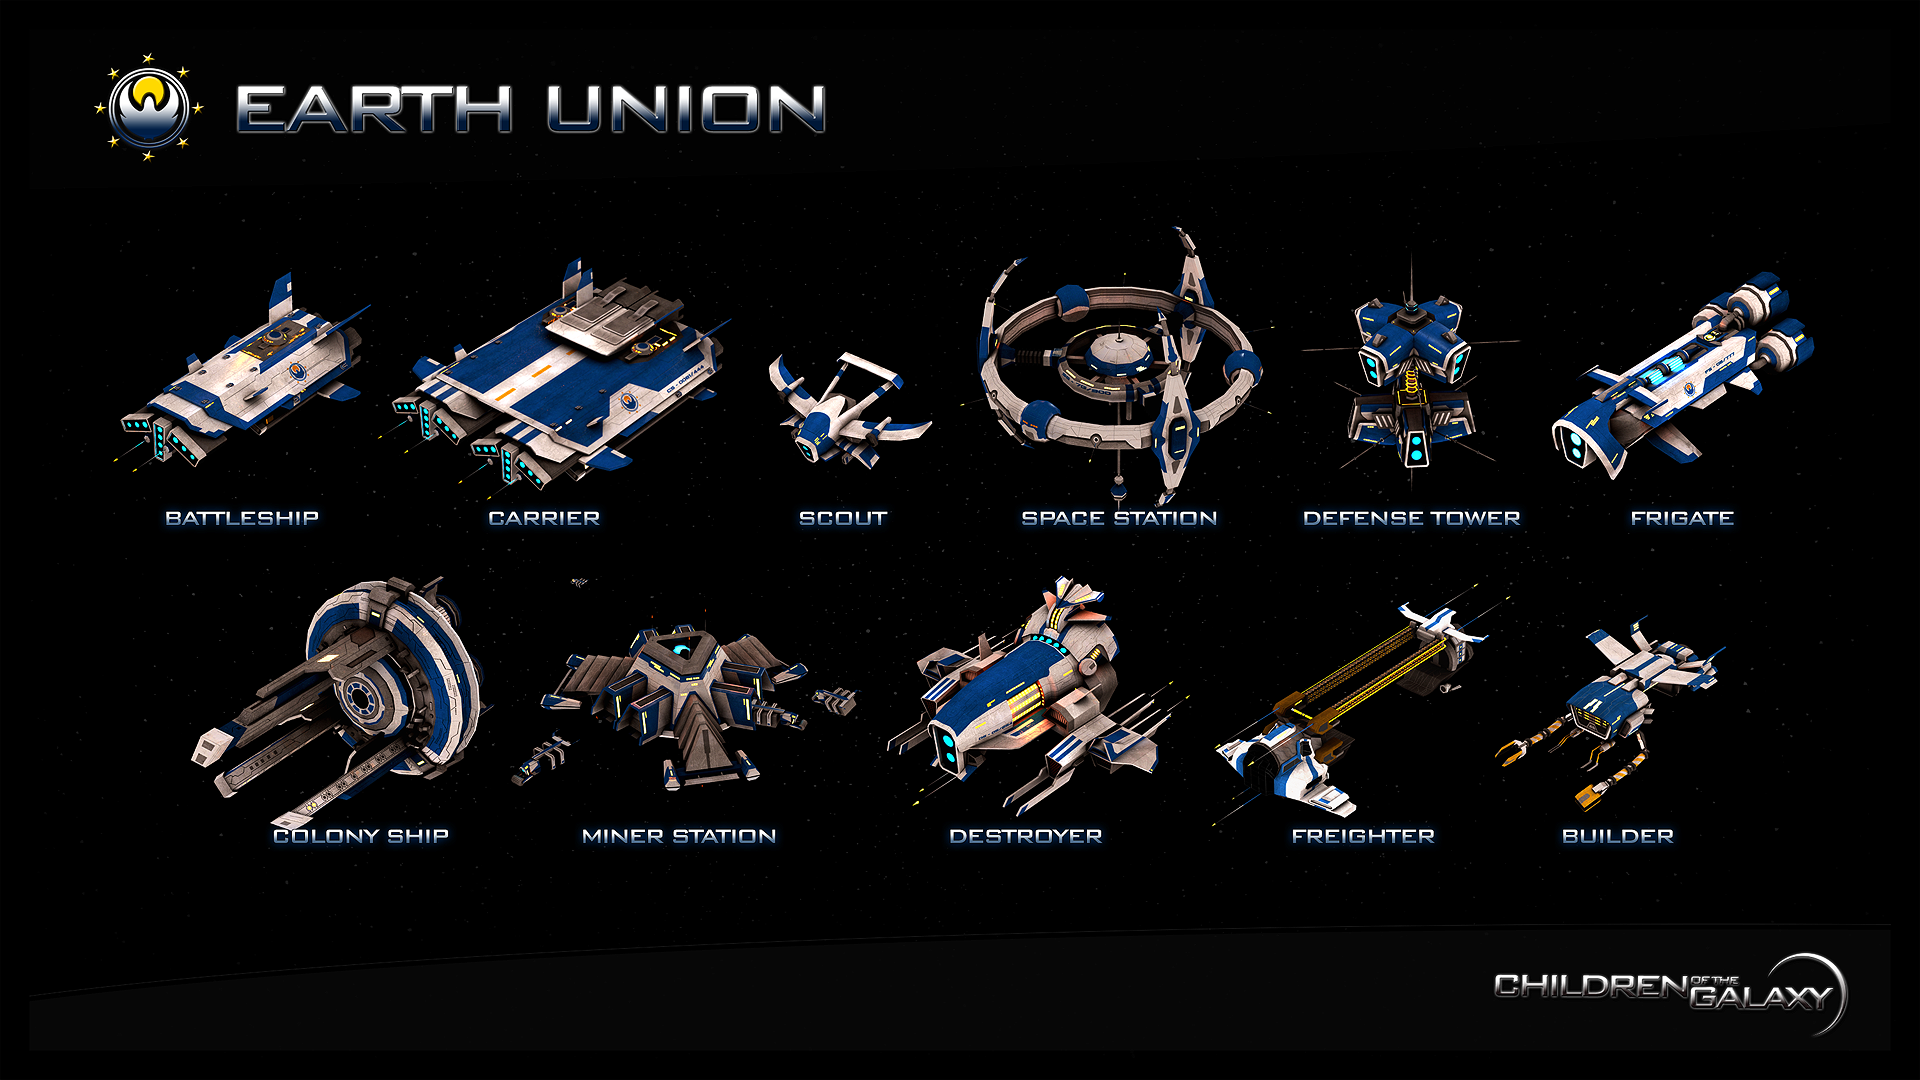 Earth Union fleet